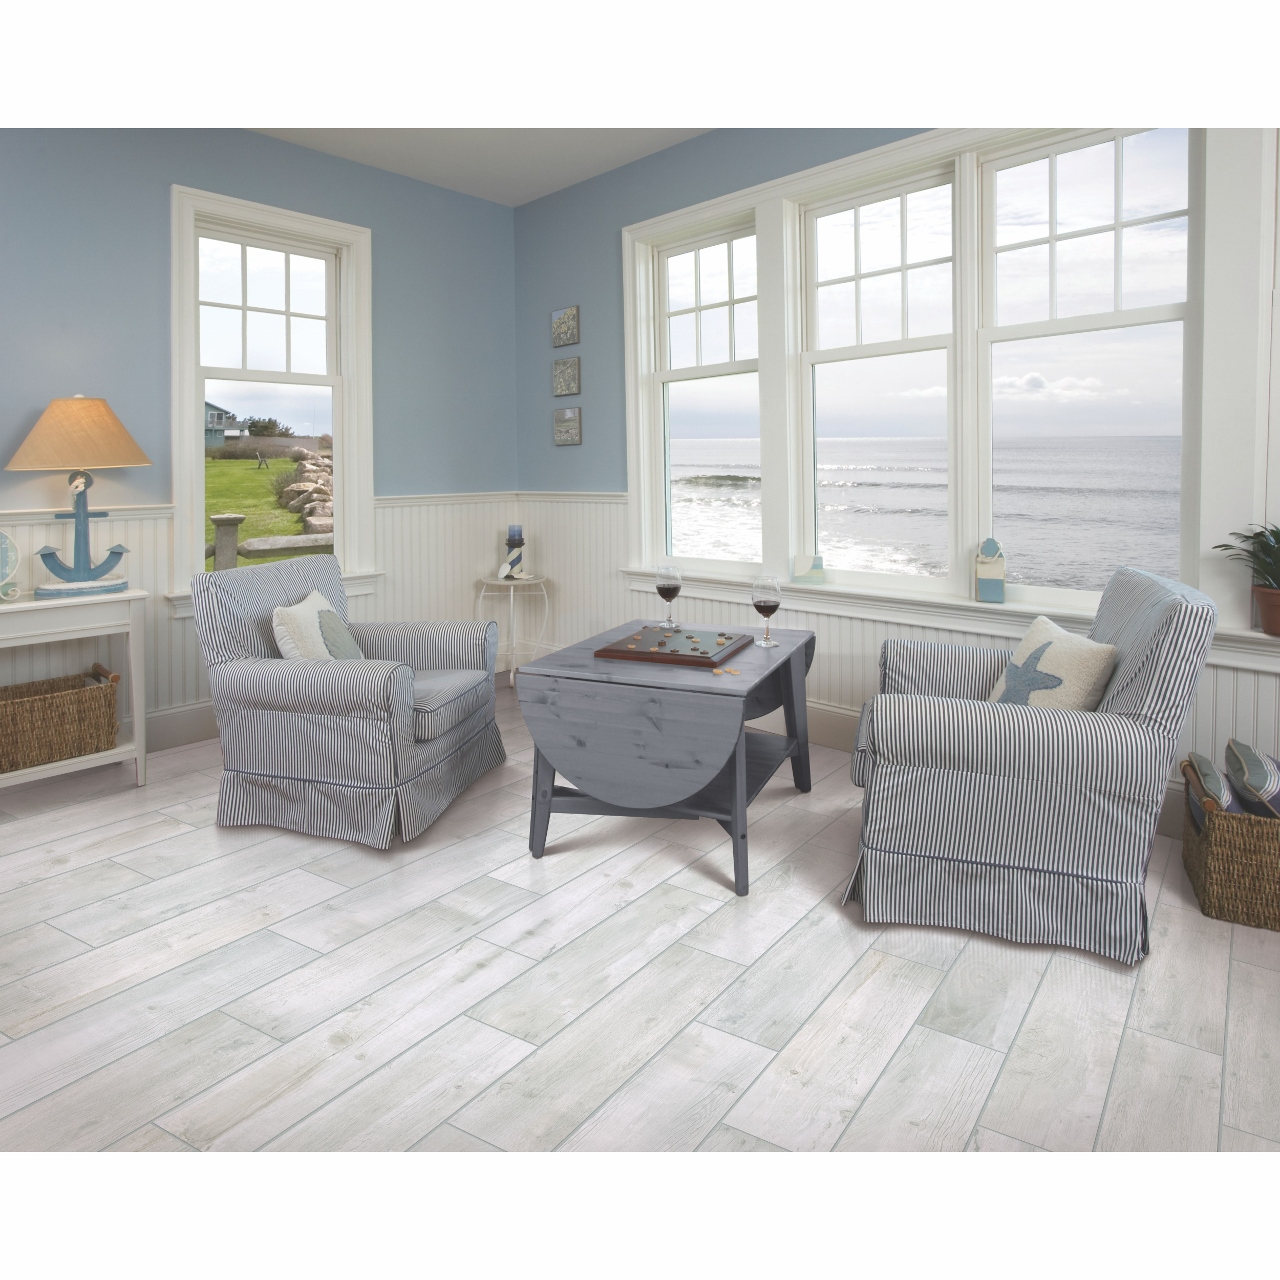 Mohawk Bryson Valley Coastal Beachwood Tile Flooring - Daltile beachwood